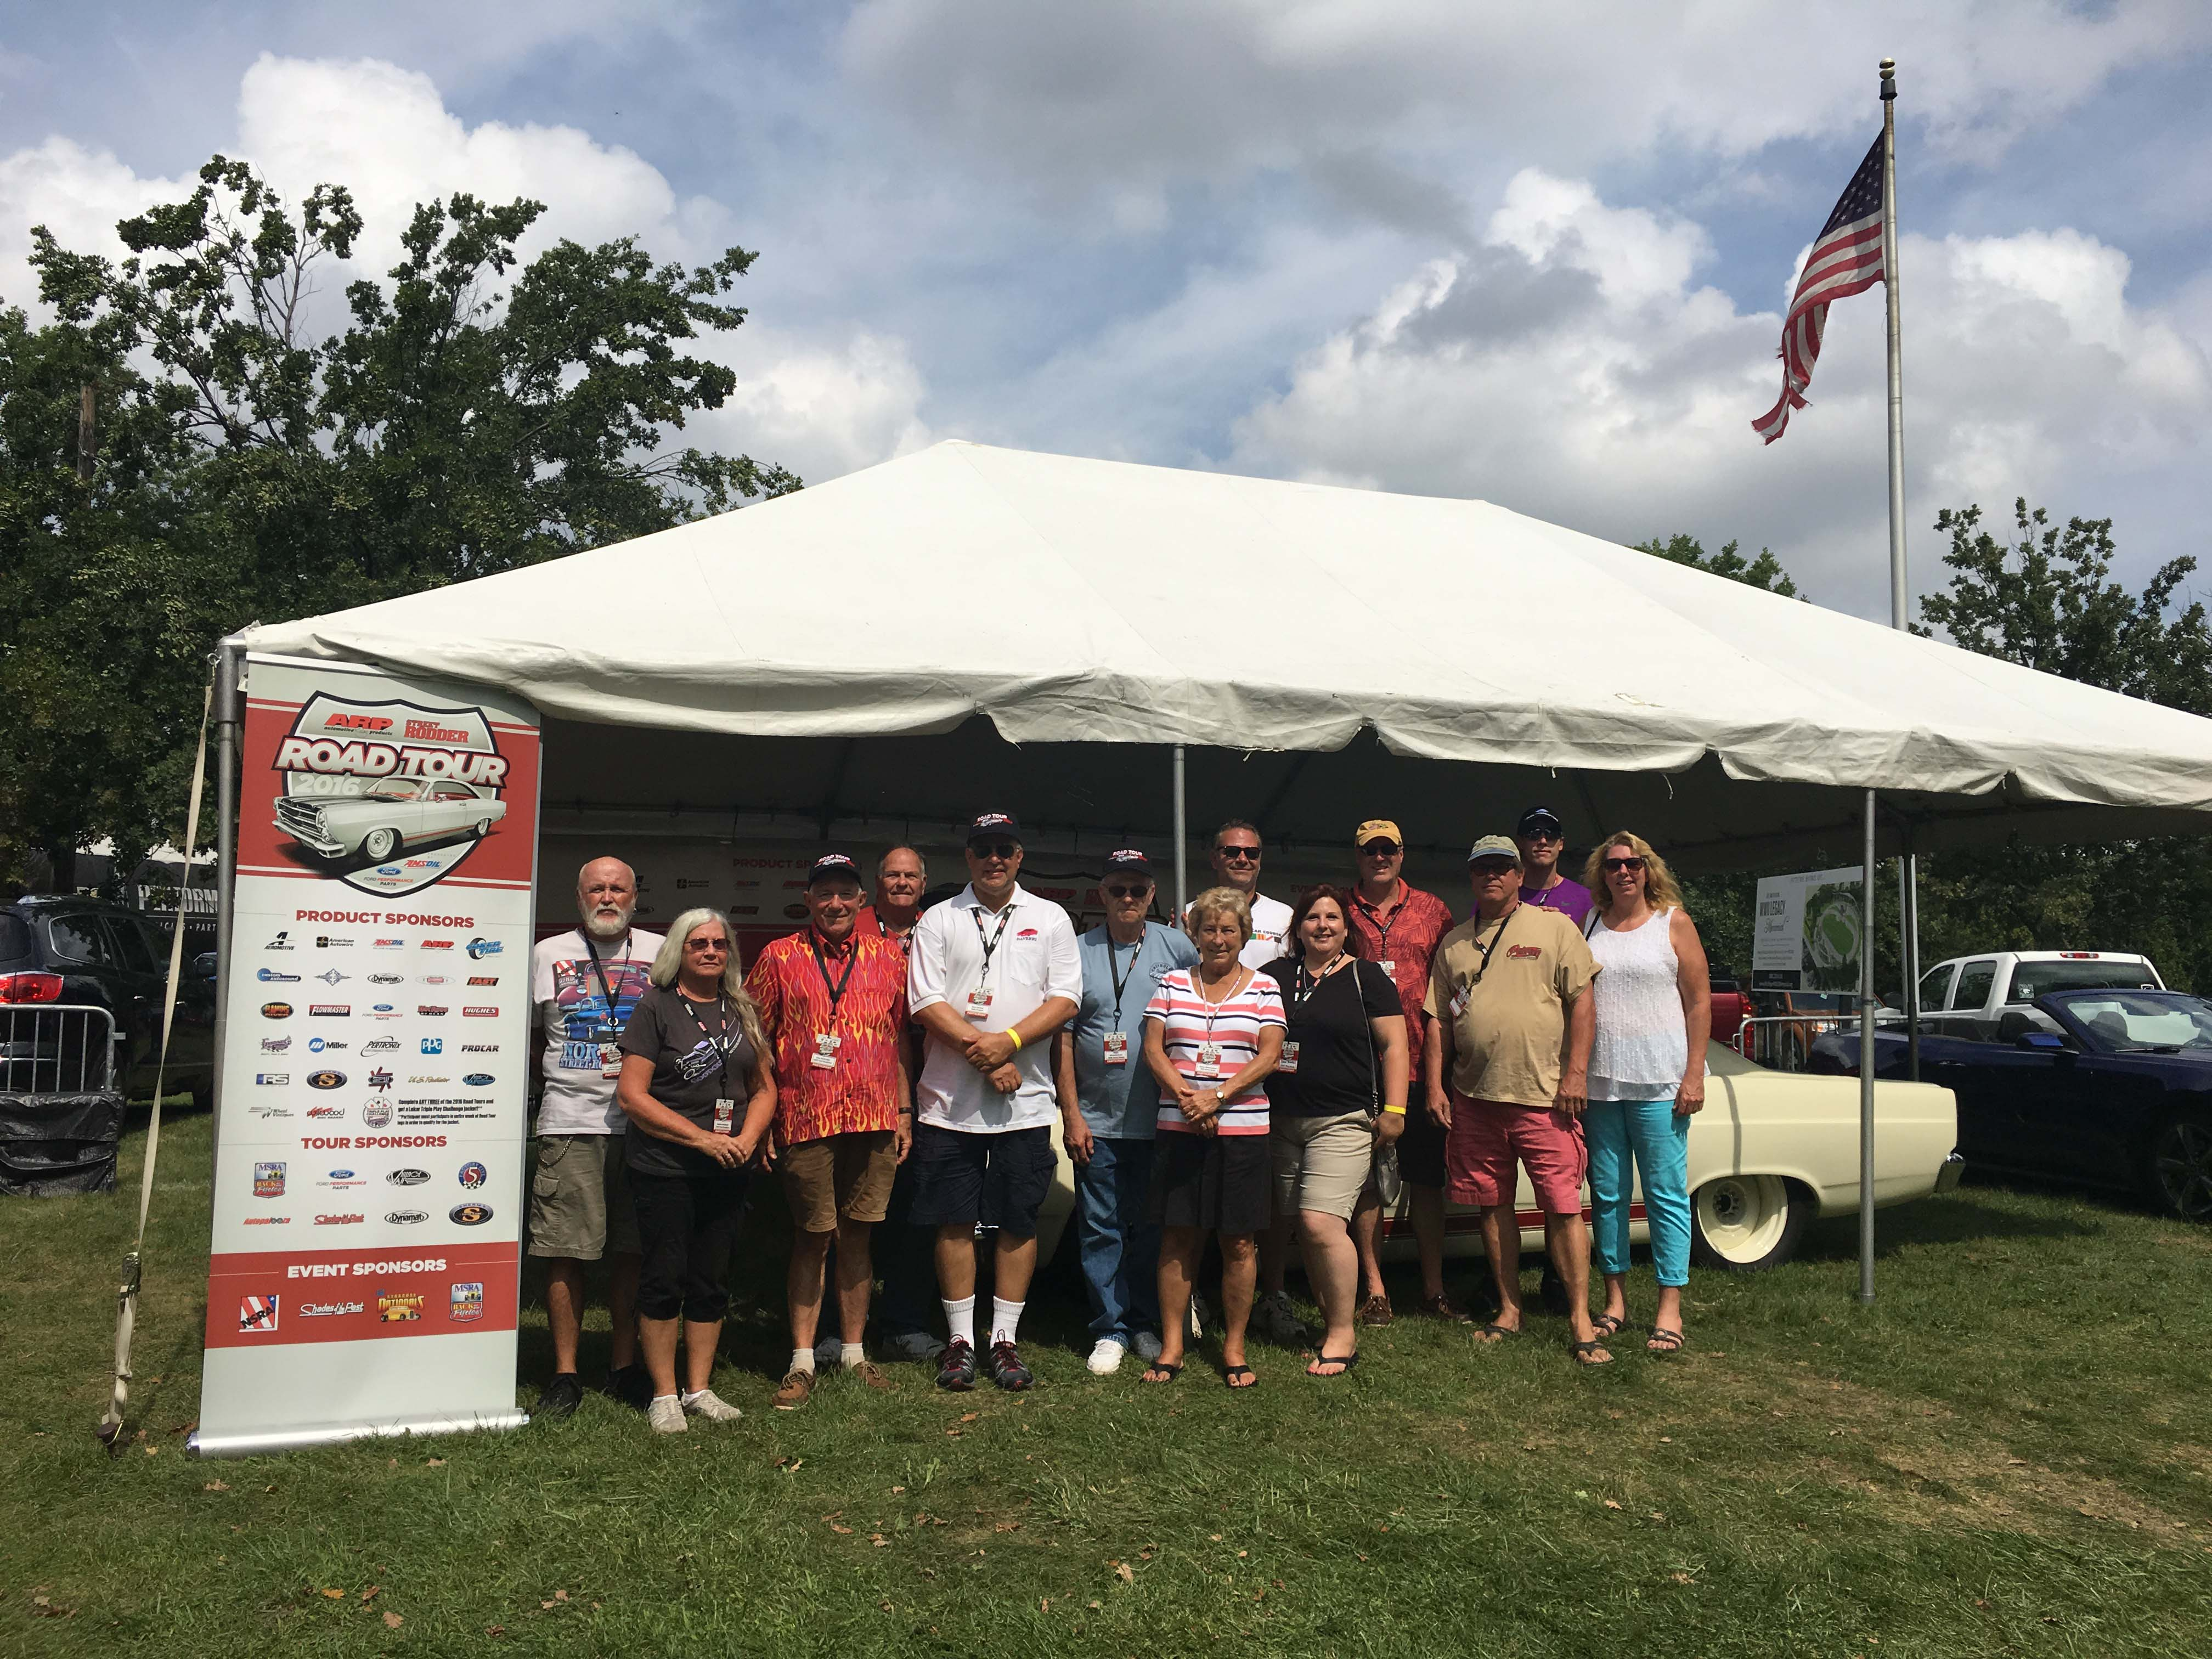 It was a fun-filled week on the Autopalooza.org Road Tour. We had a jam-packed seven days and everyone had a great time. Plan on joining us again in August as we return to Detroit and the Woodward Dream Cruise.